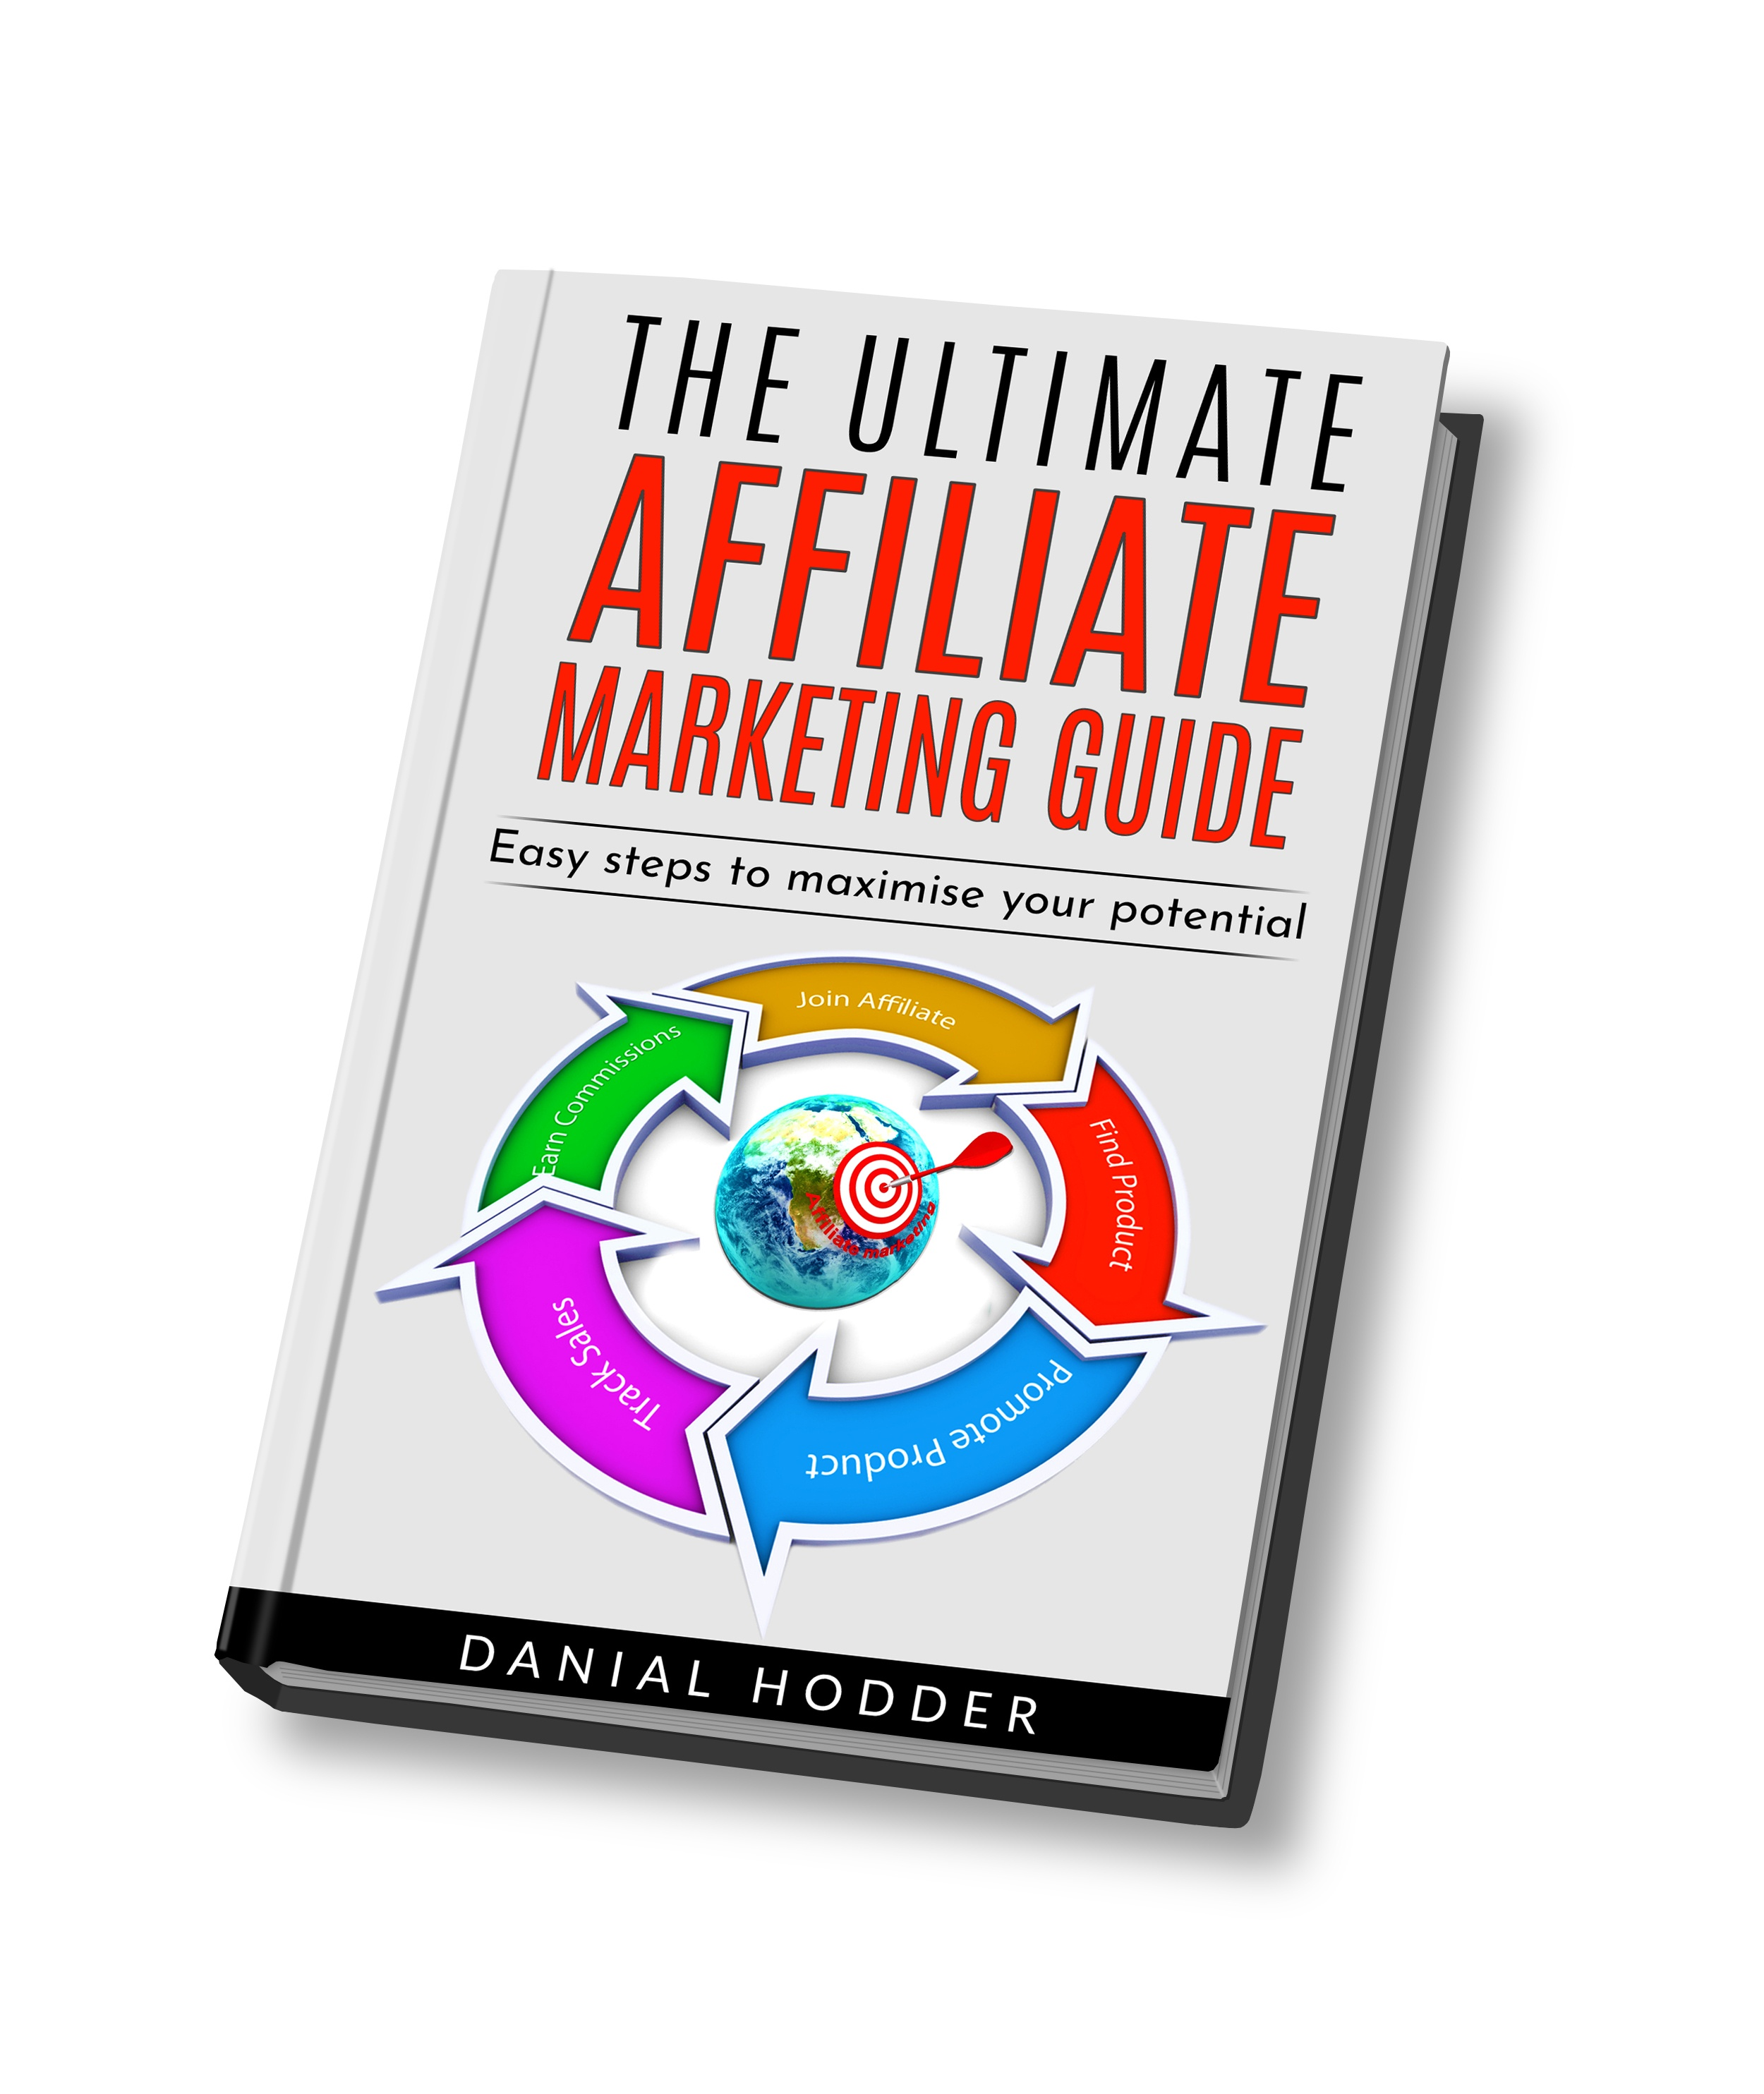 the ultimate affiliate marketing guide